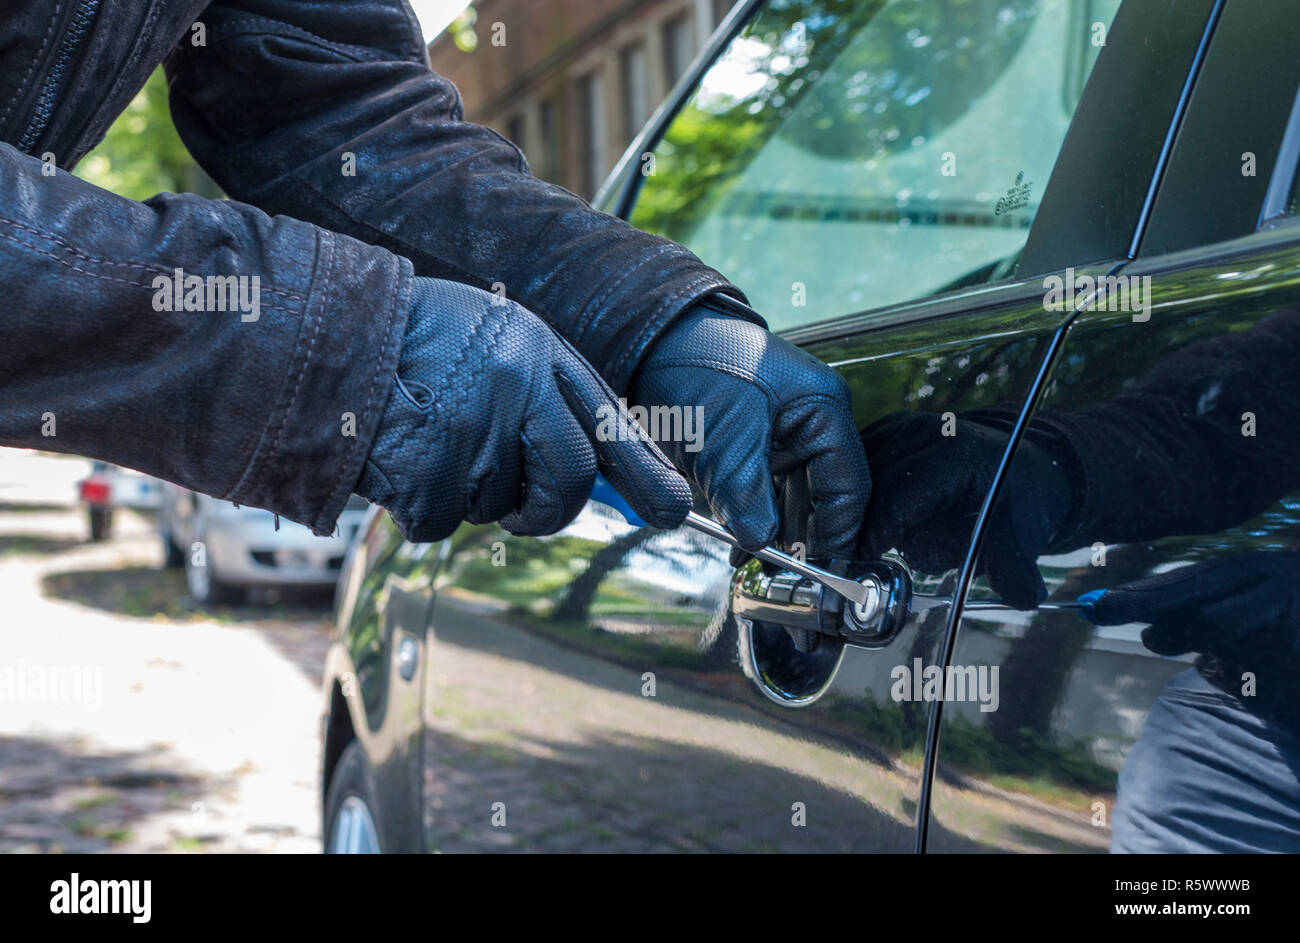 a person tries to break up a car - Stock Image